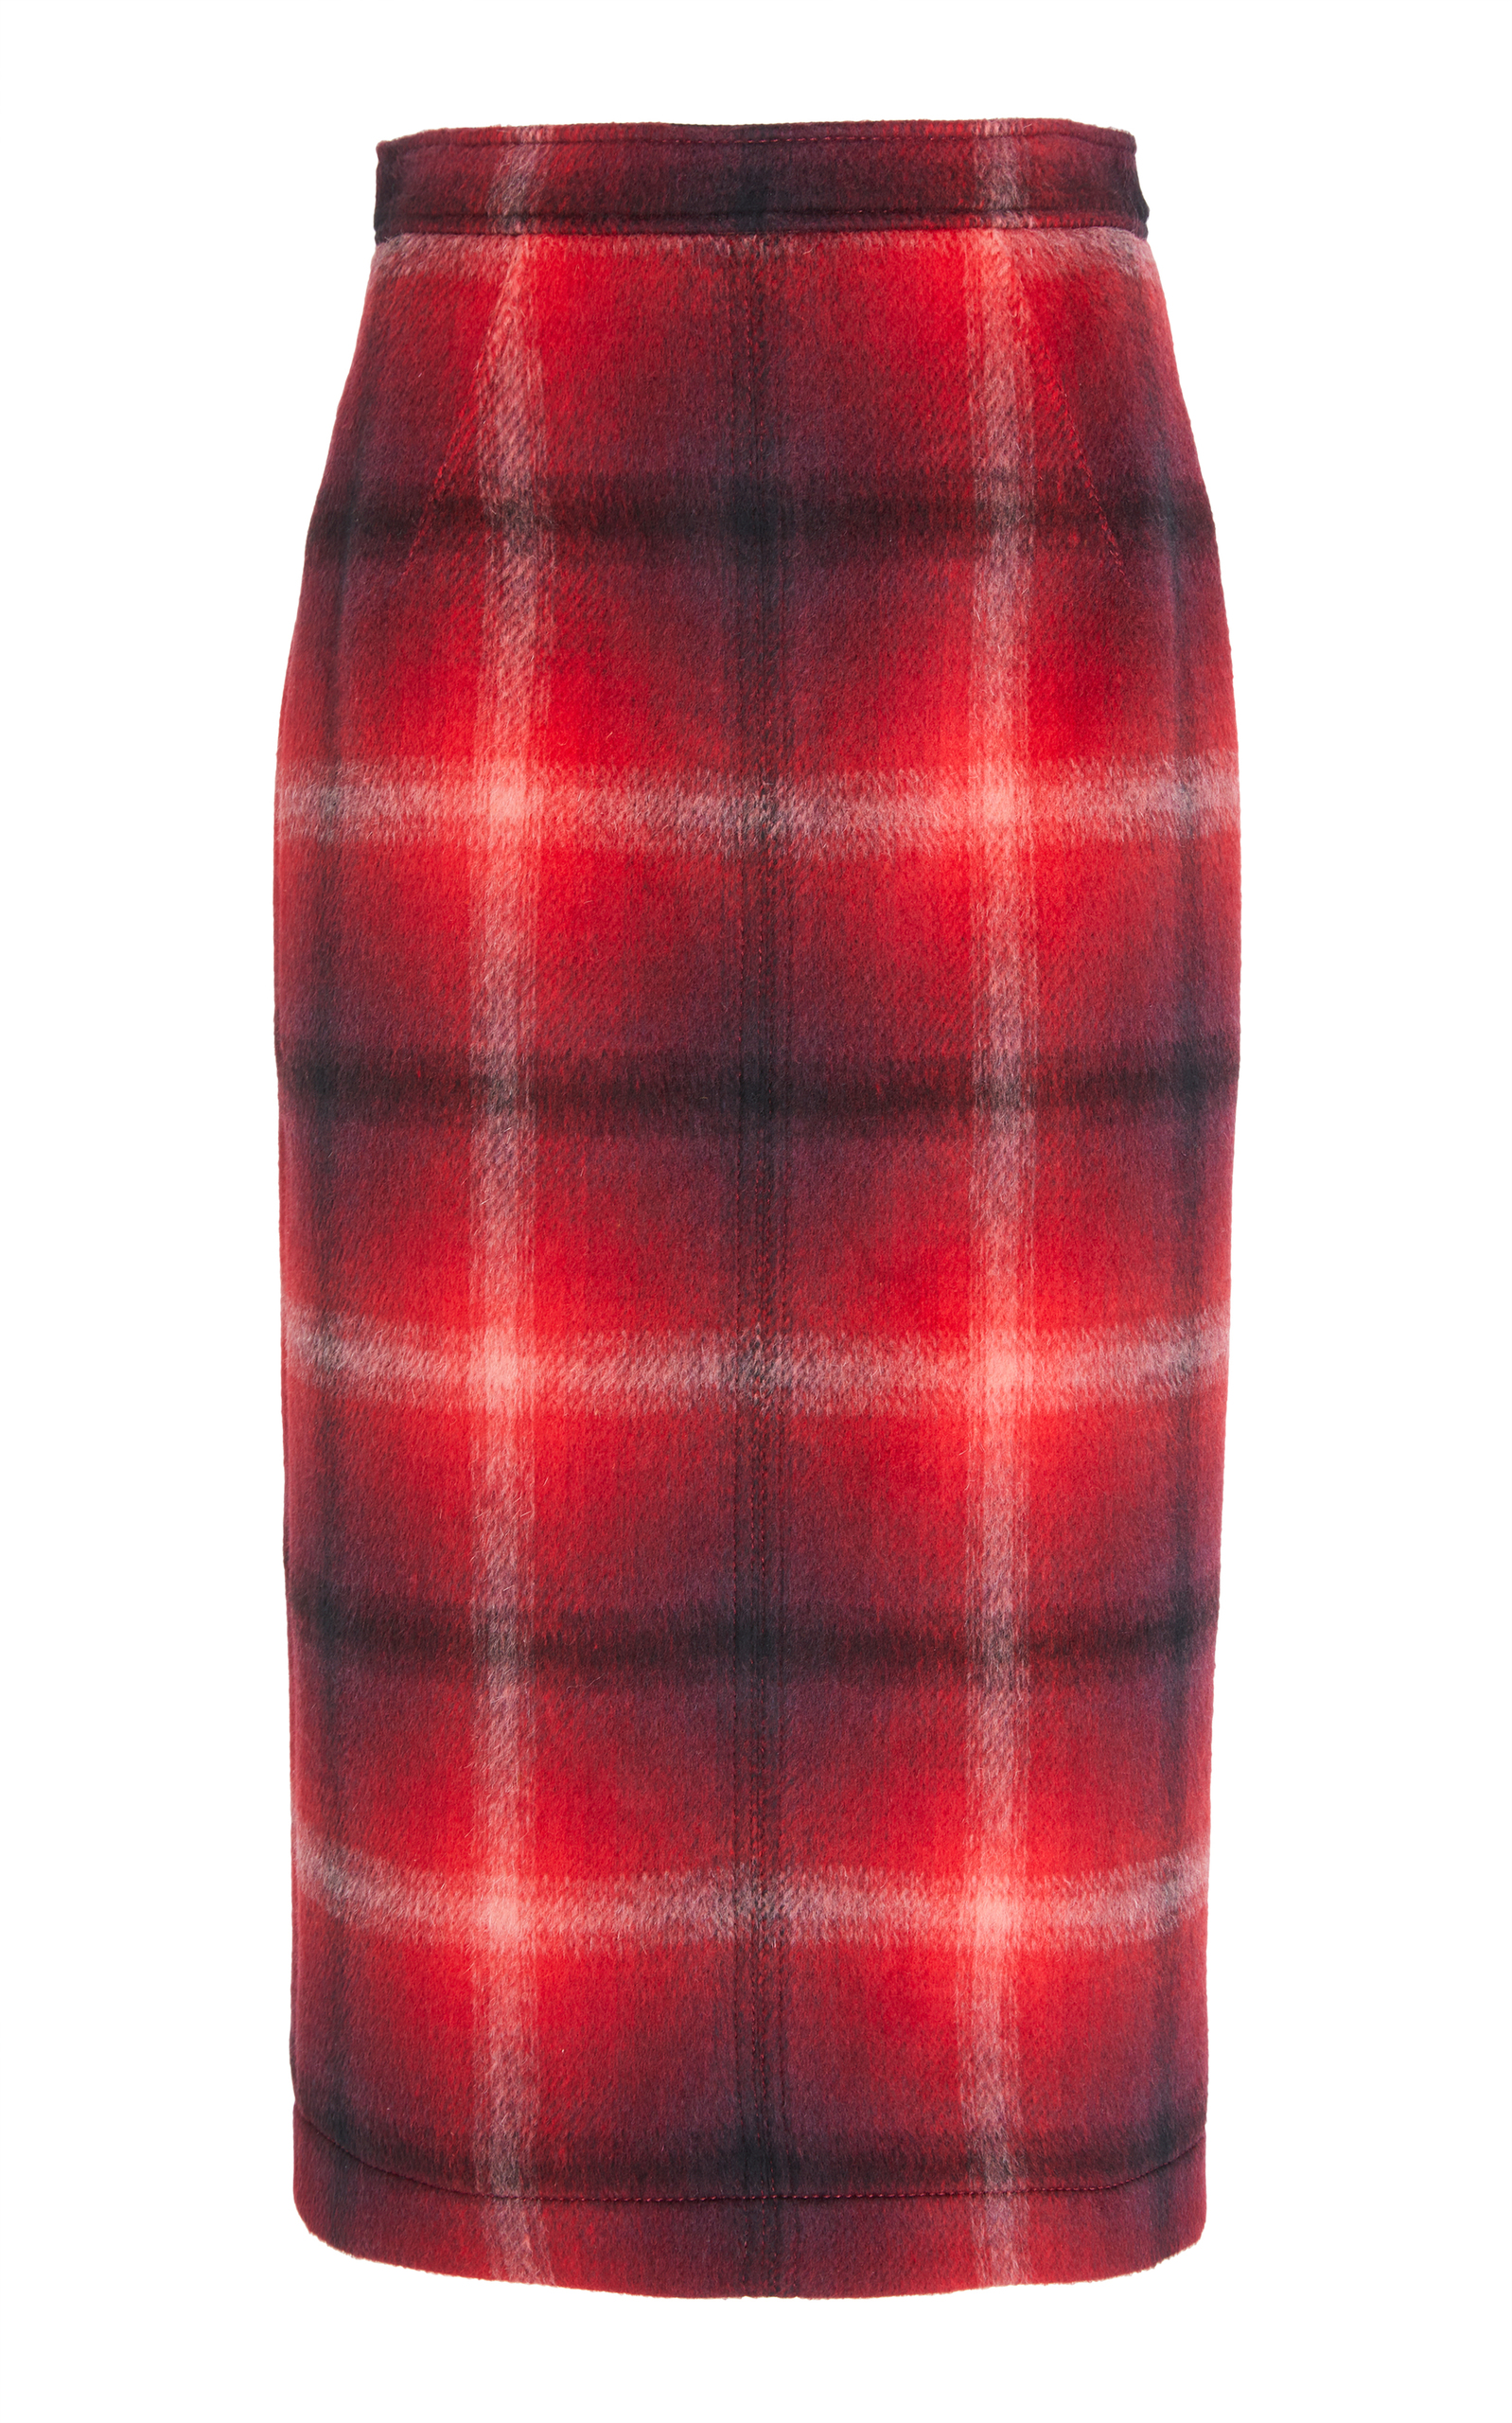 N&Deg;21 Charlotte Check Pencil Skirt, Plaid